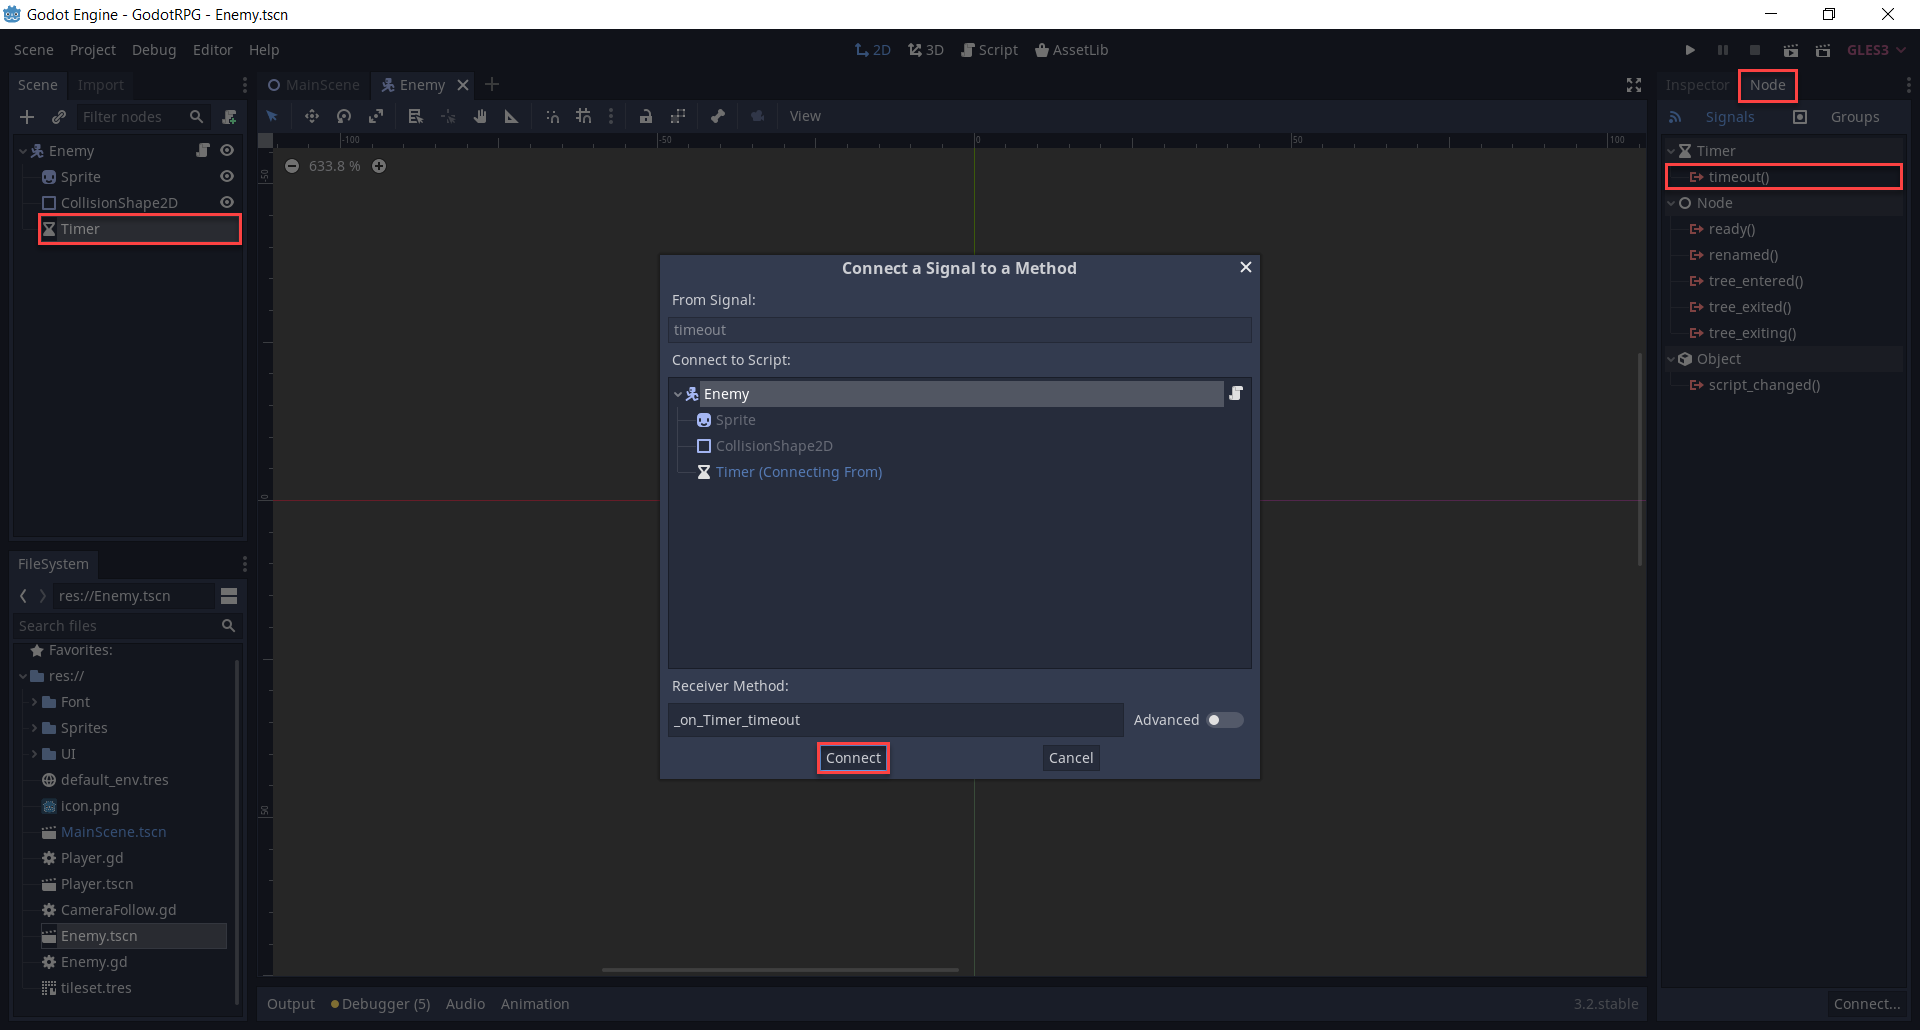 Godot Timer's Connect a Signal to a Method window